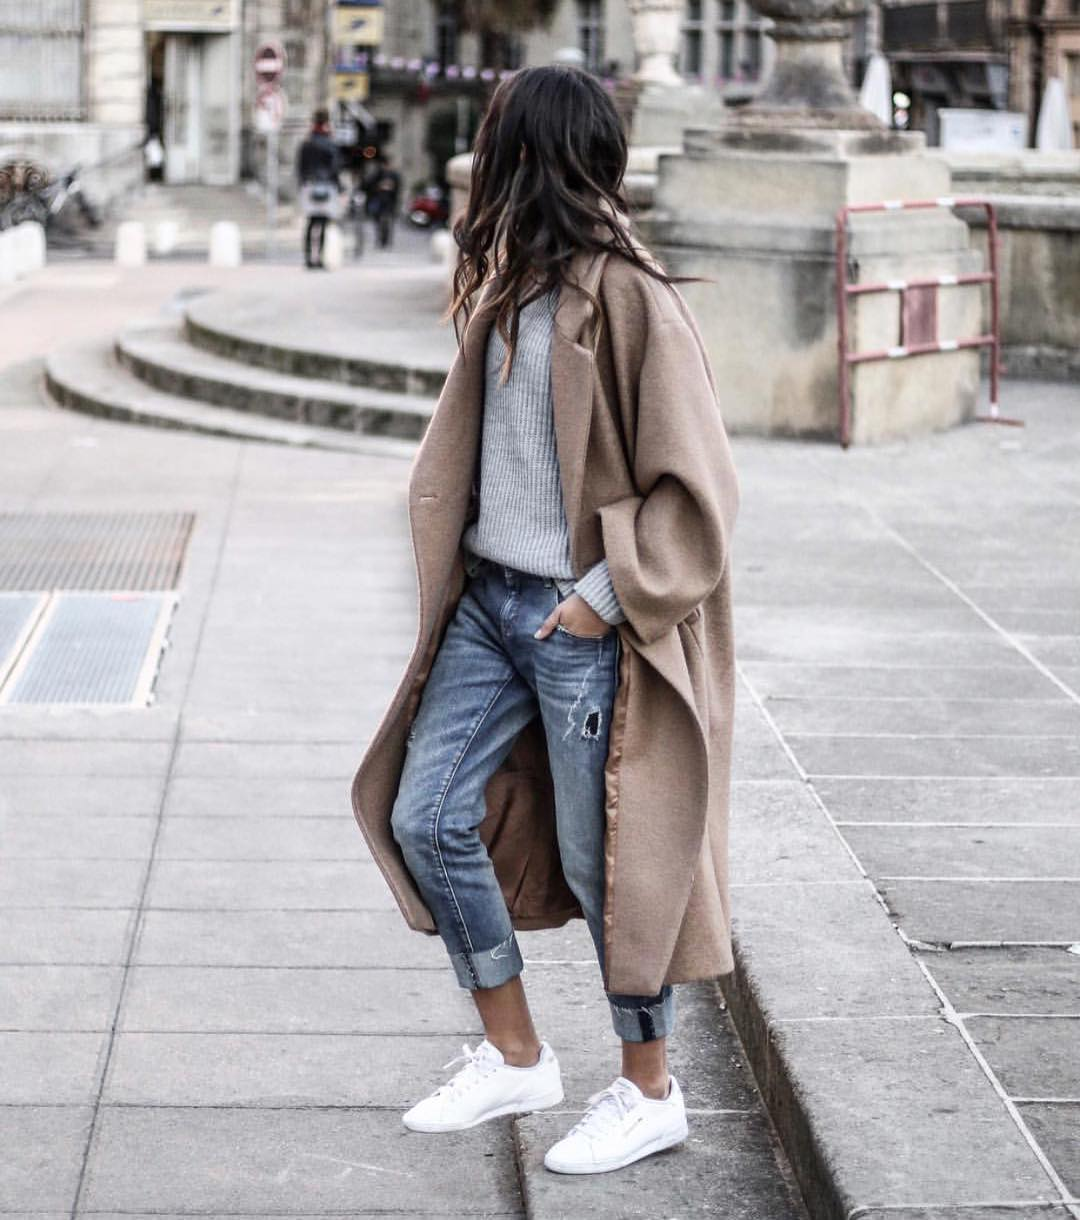 Oversized Grey Coat With Sweater Teamed With Cuffed Jeans And White Sneakers 2021